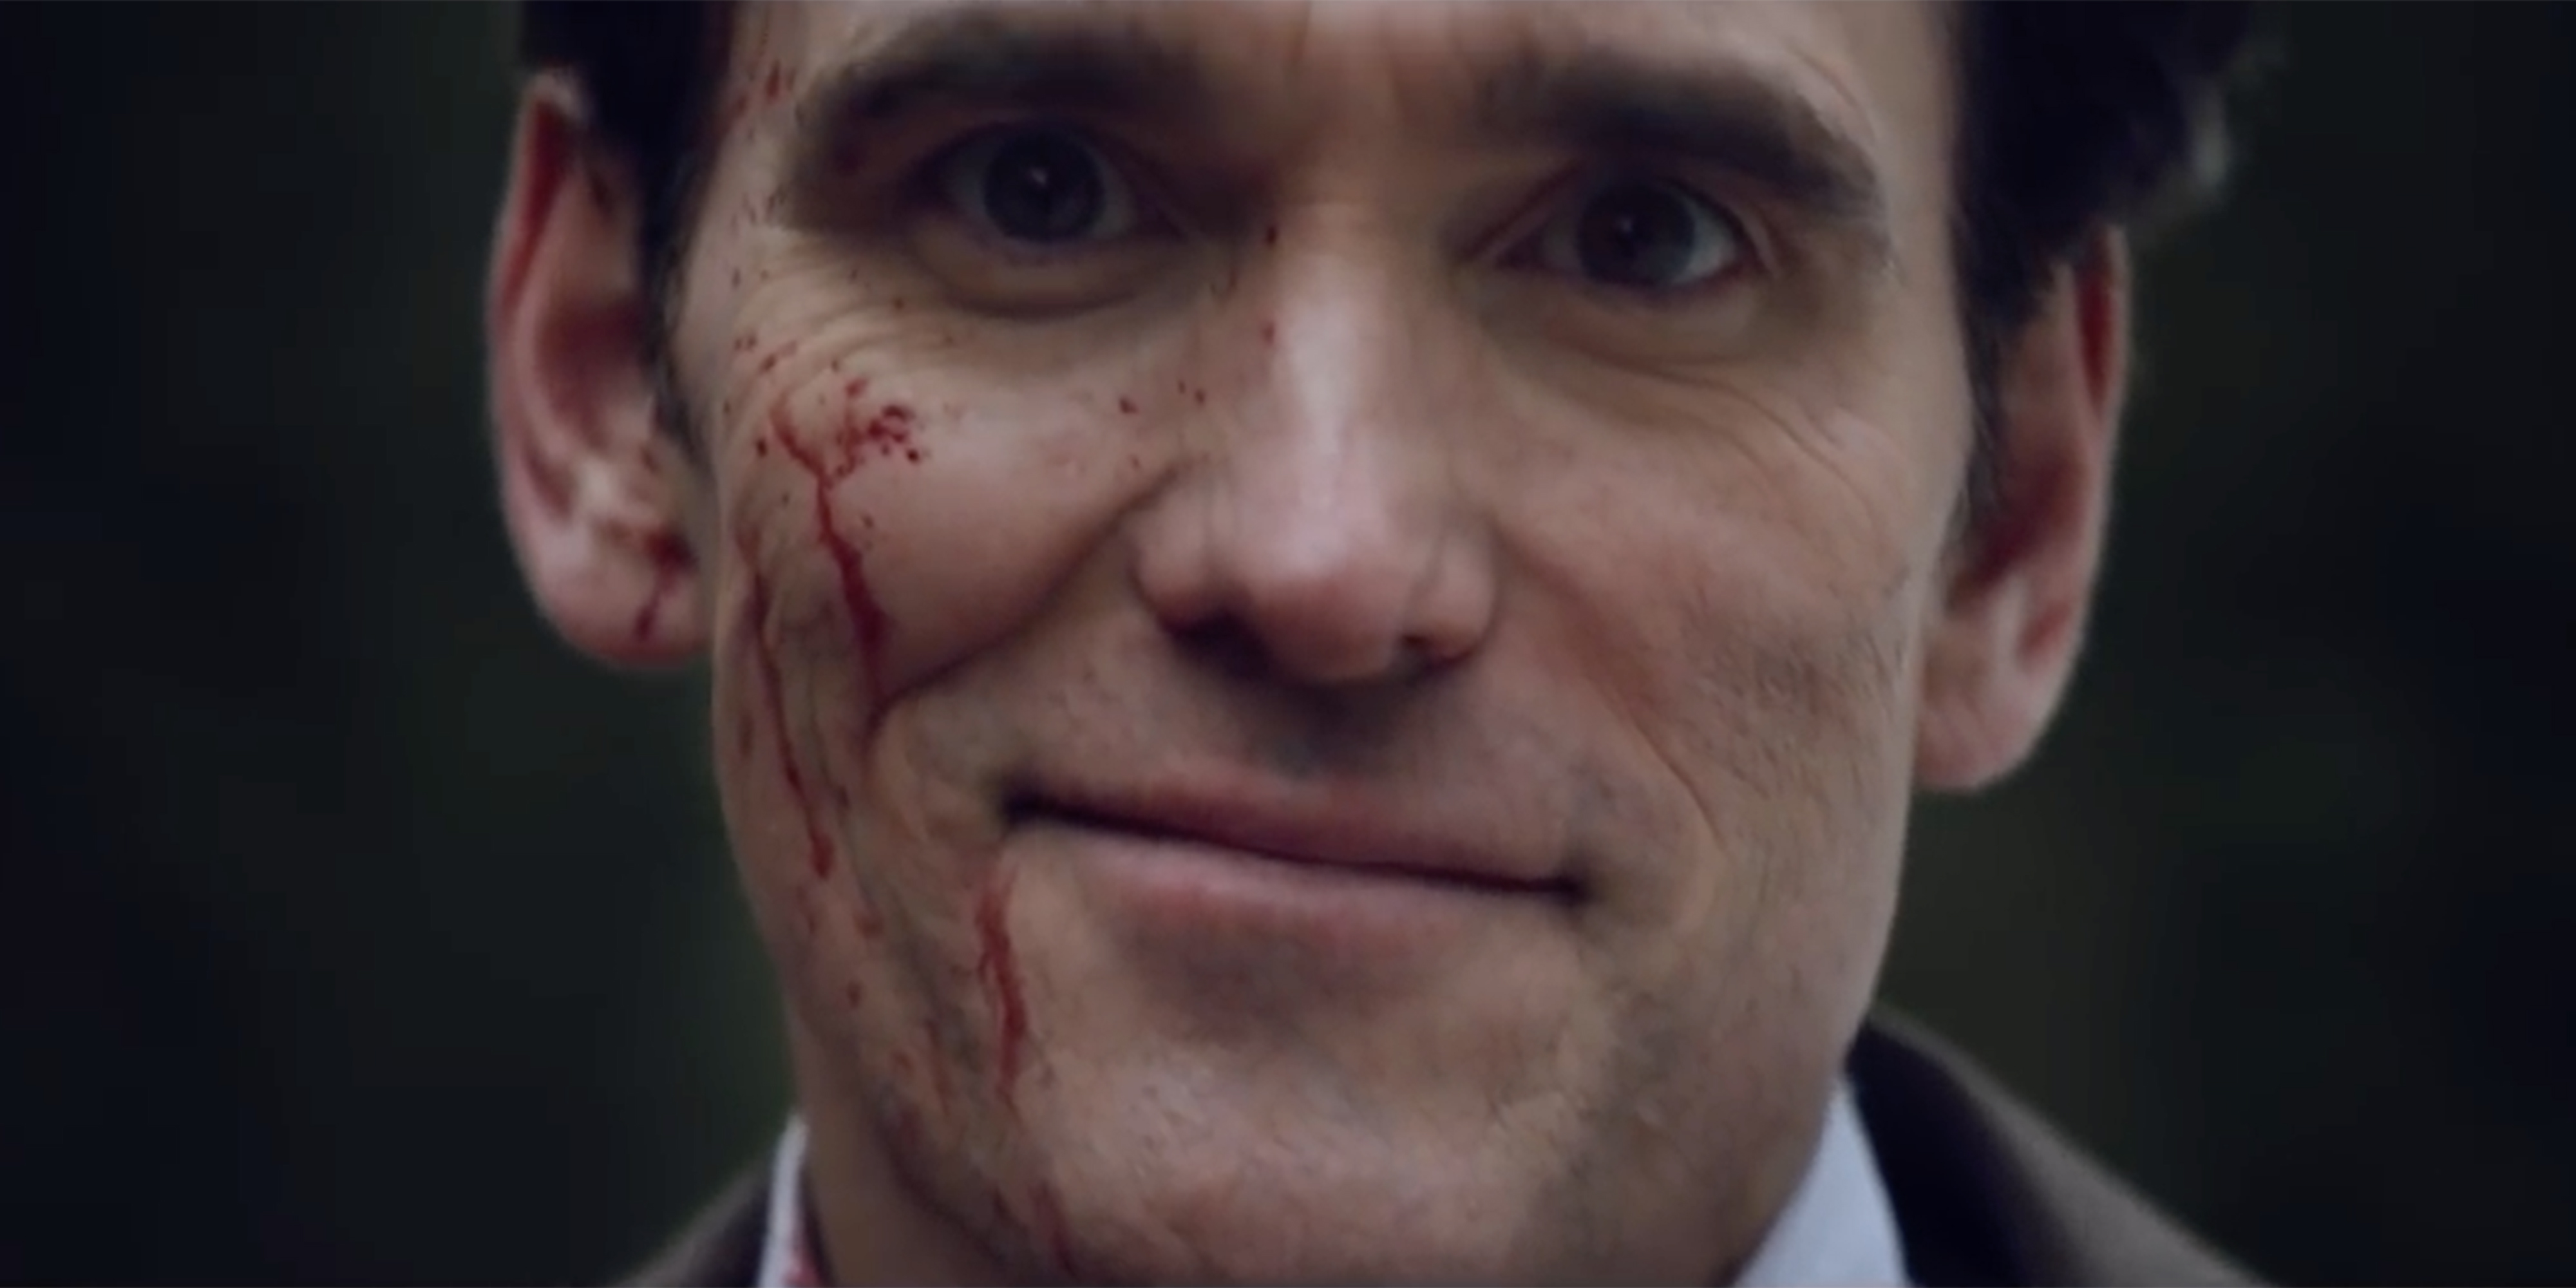 KREVENDE ROLLE: Matt Dillon spiller seriemorder i The House That Jack Built